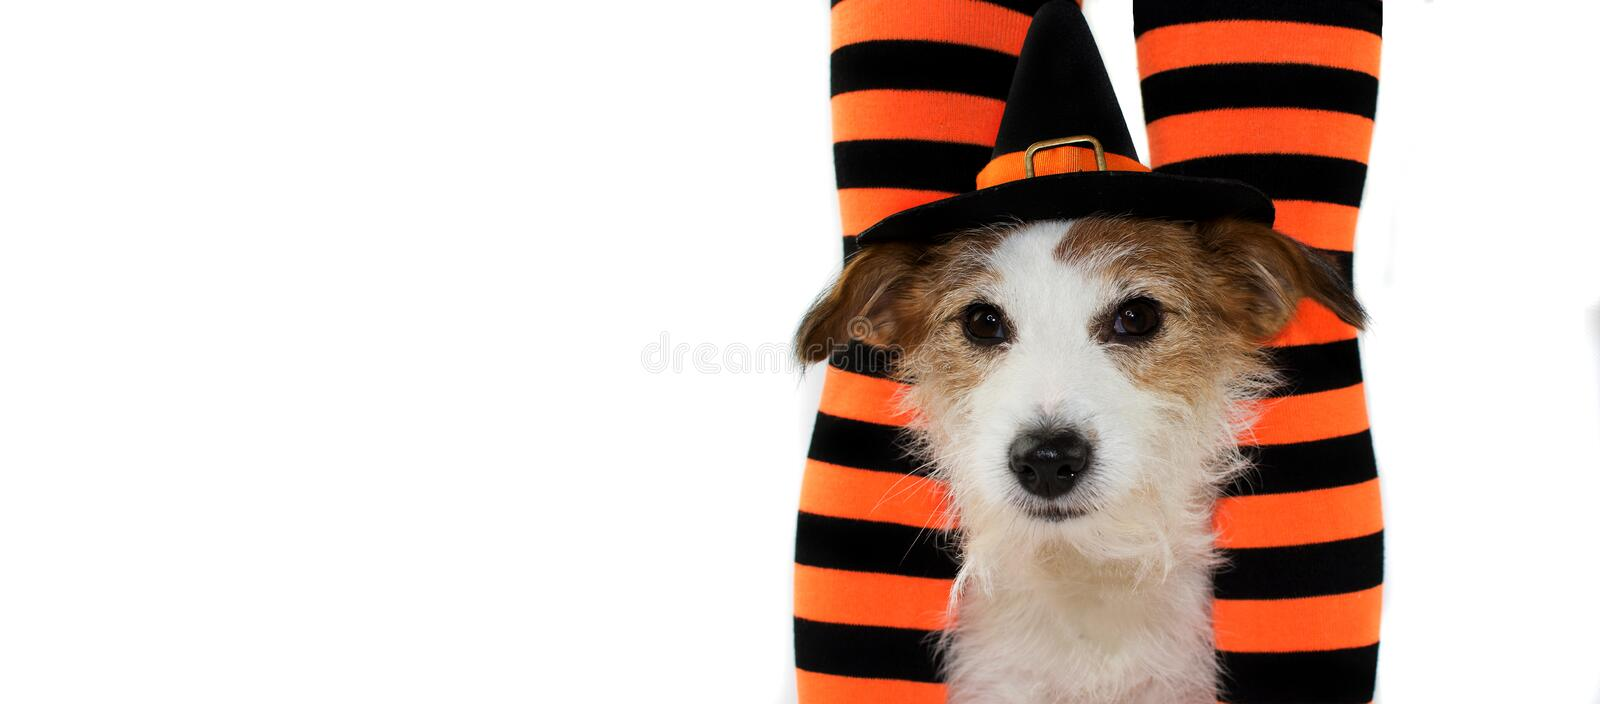 BANNER OF A CUTE HALLOWEEN DOG WEARING A WITCH OR WIZARD HAT SIT stock images